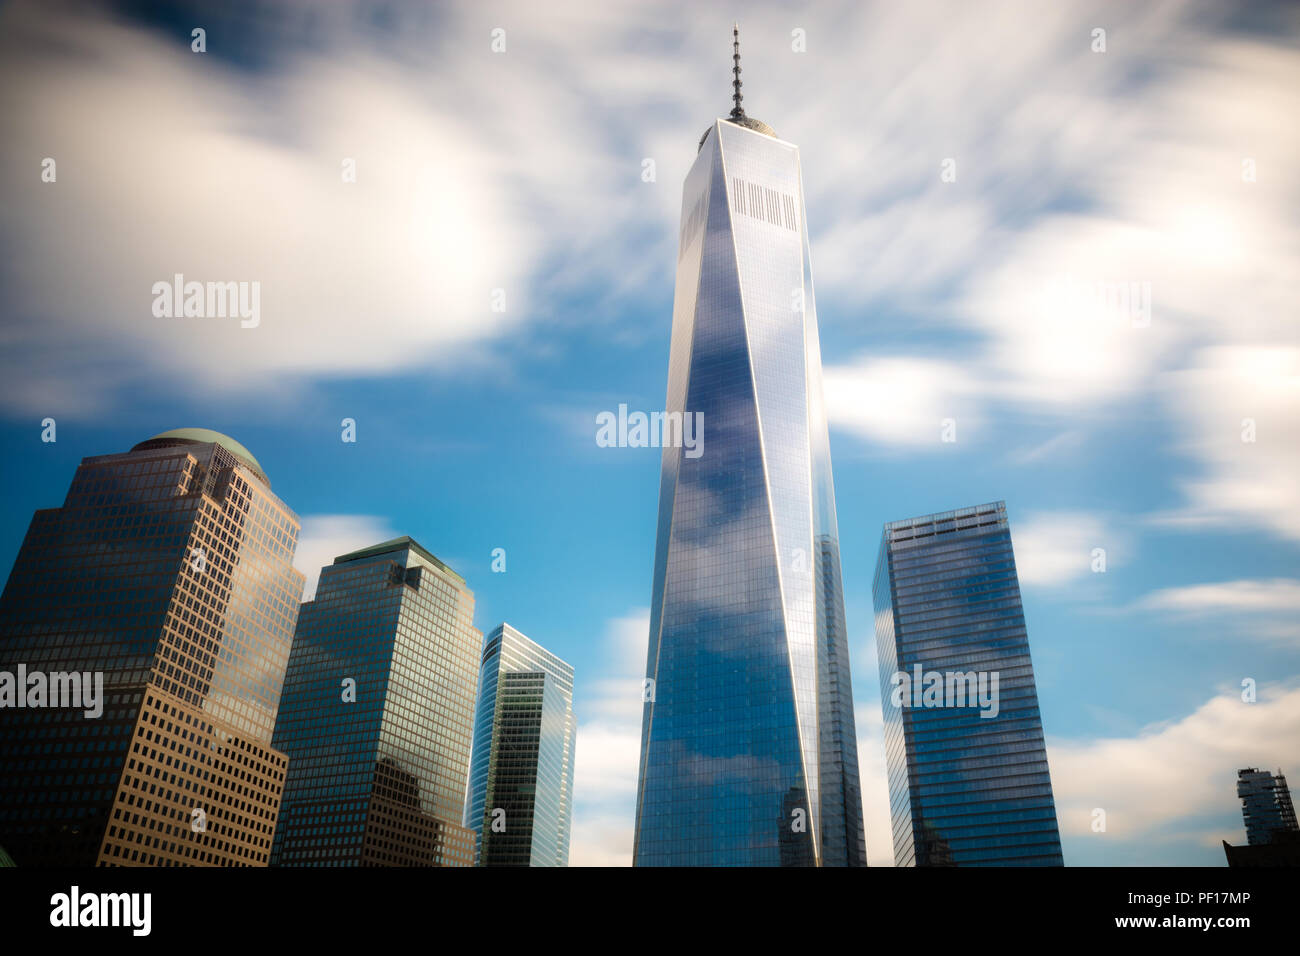 Fast moving clouds over One WTC and the 9/11 memorial in Lower Manhattan, New York City. Stock Photo